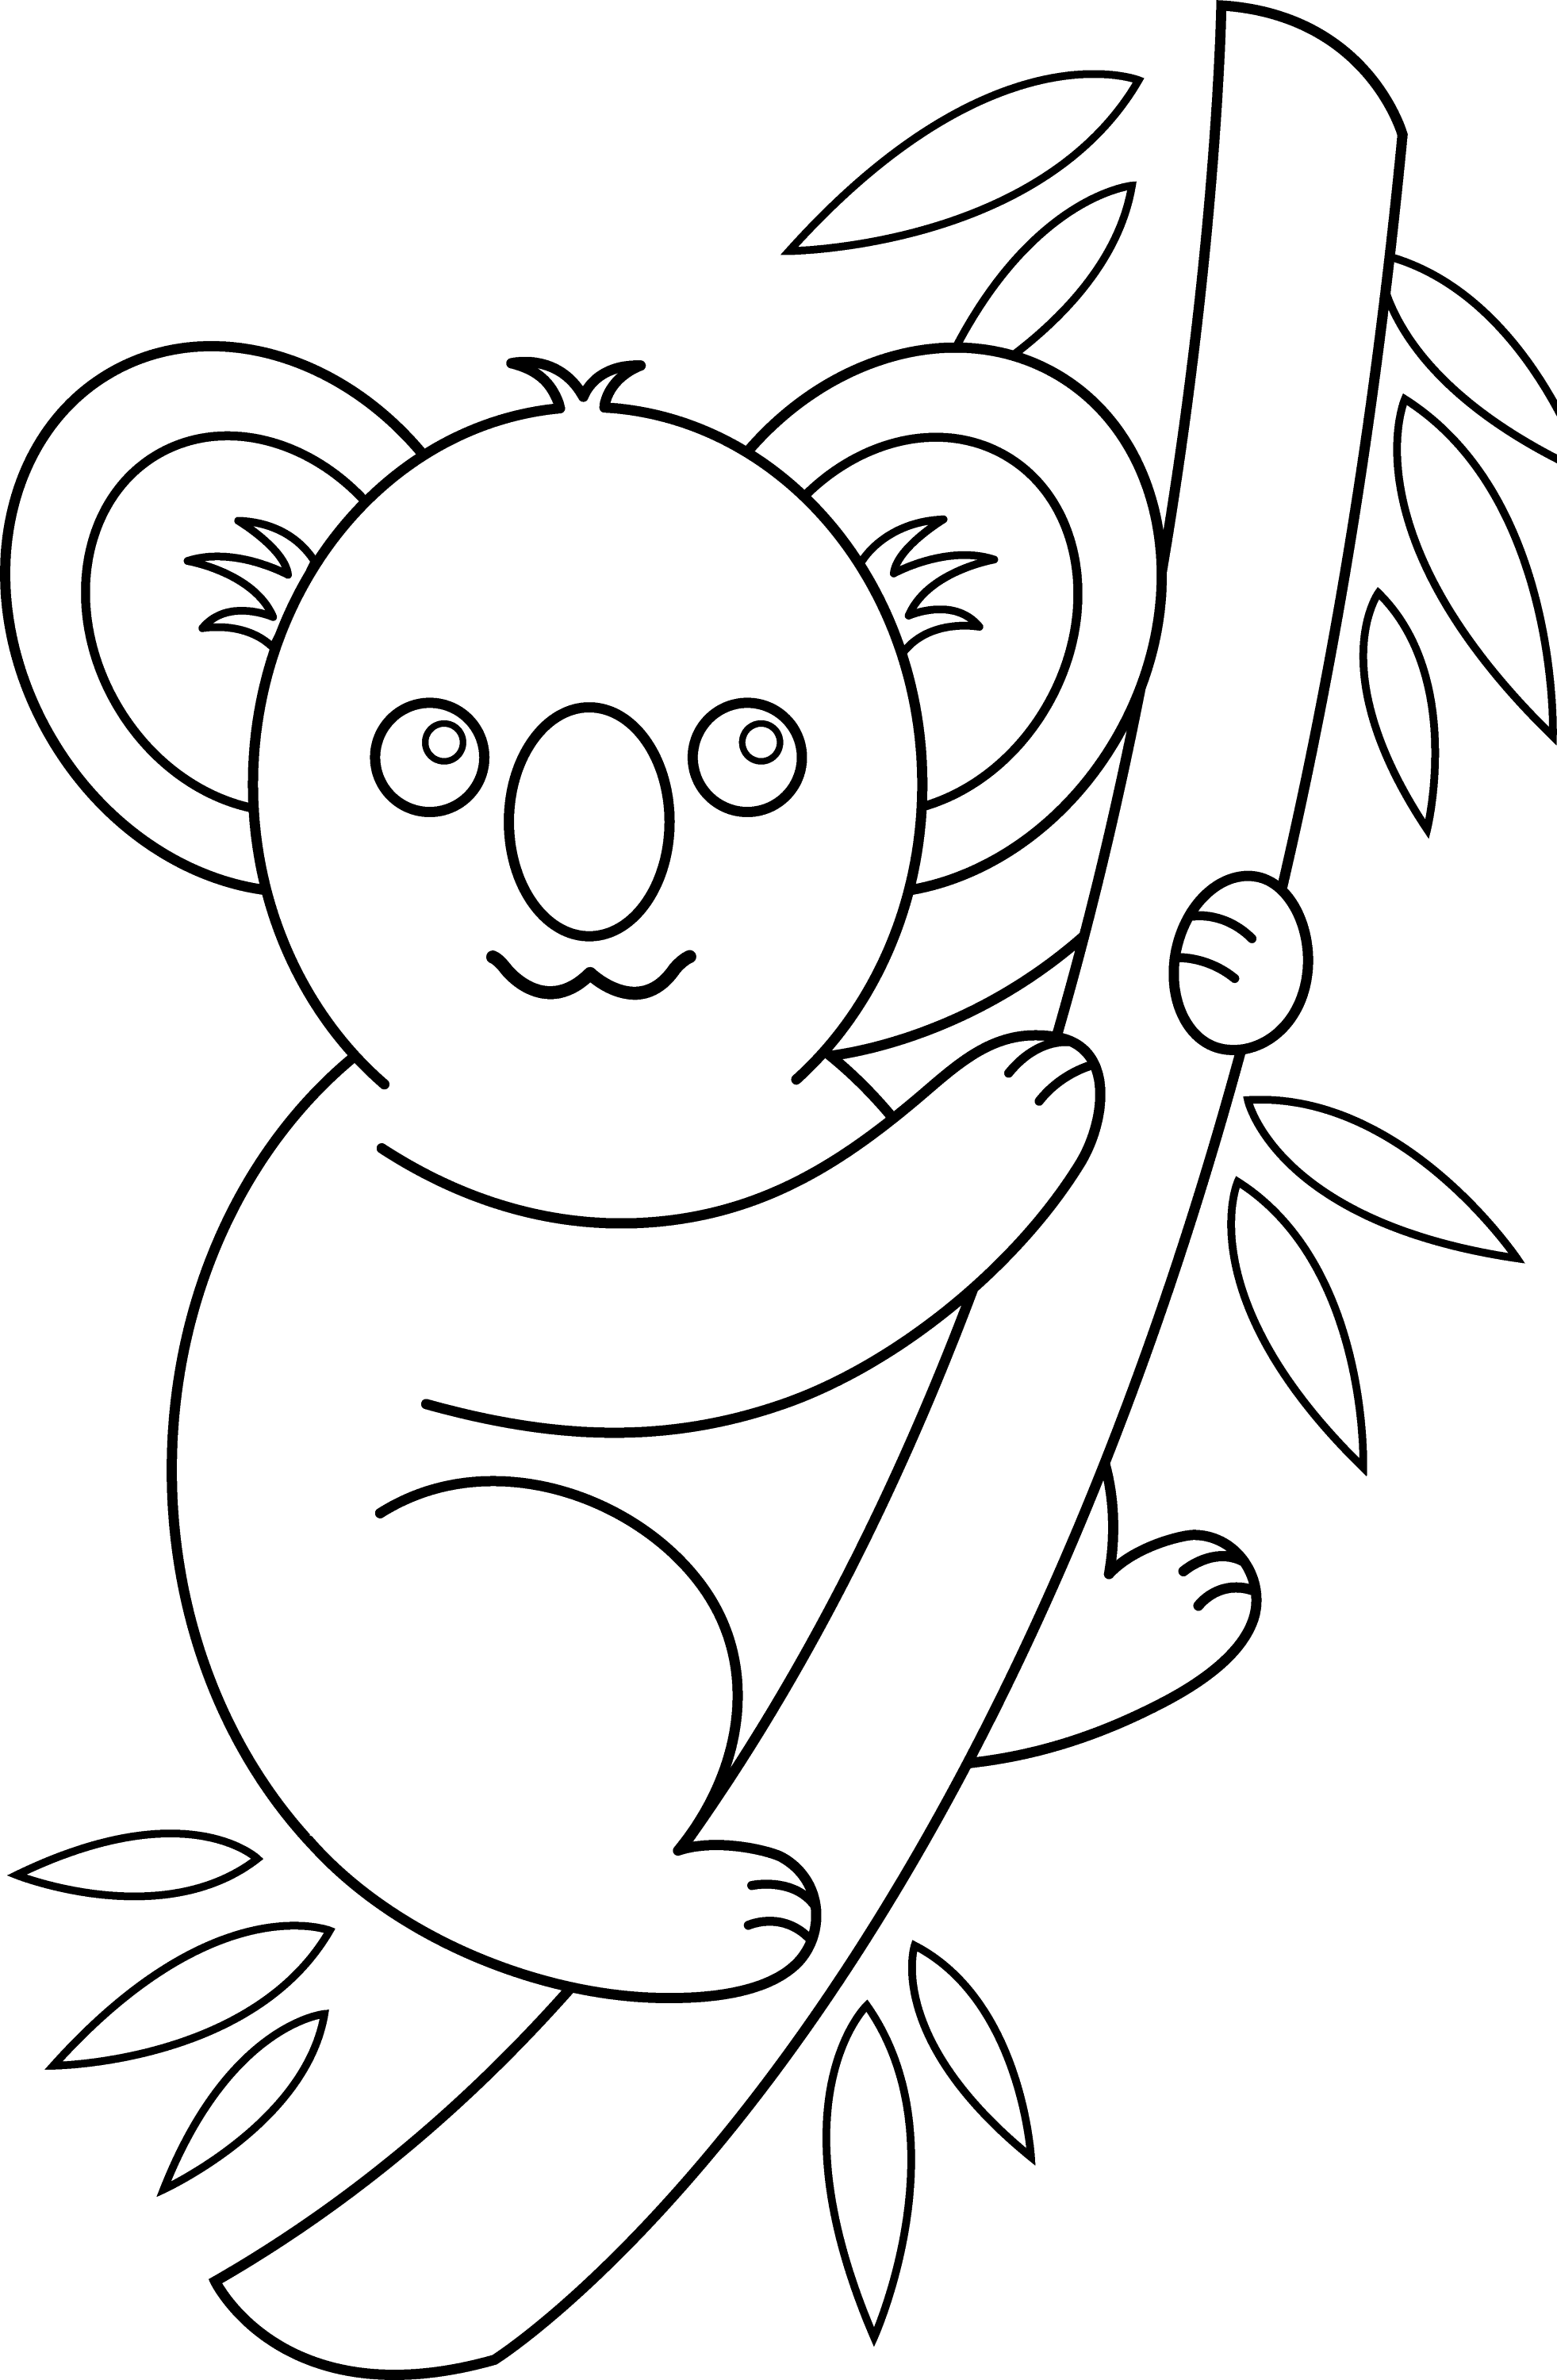 koala pictures to colour in free koala coloring pages for adults printable to koala pictures in to colour